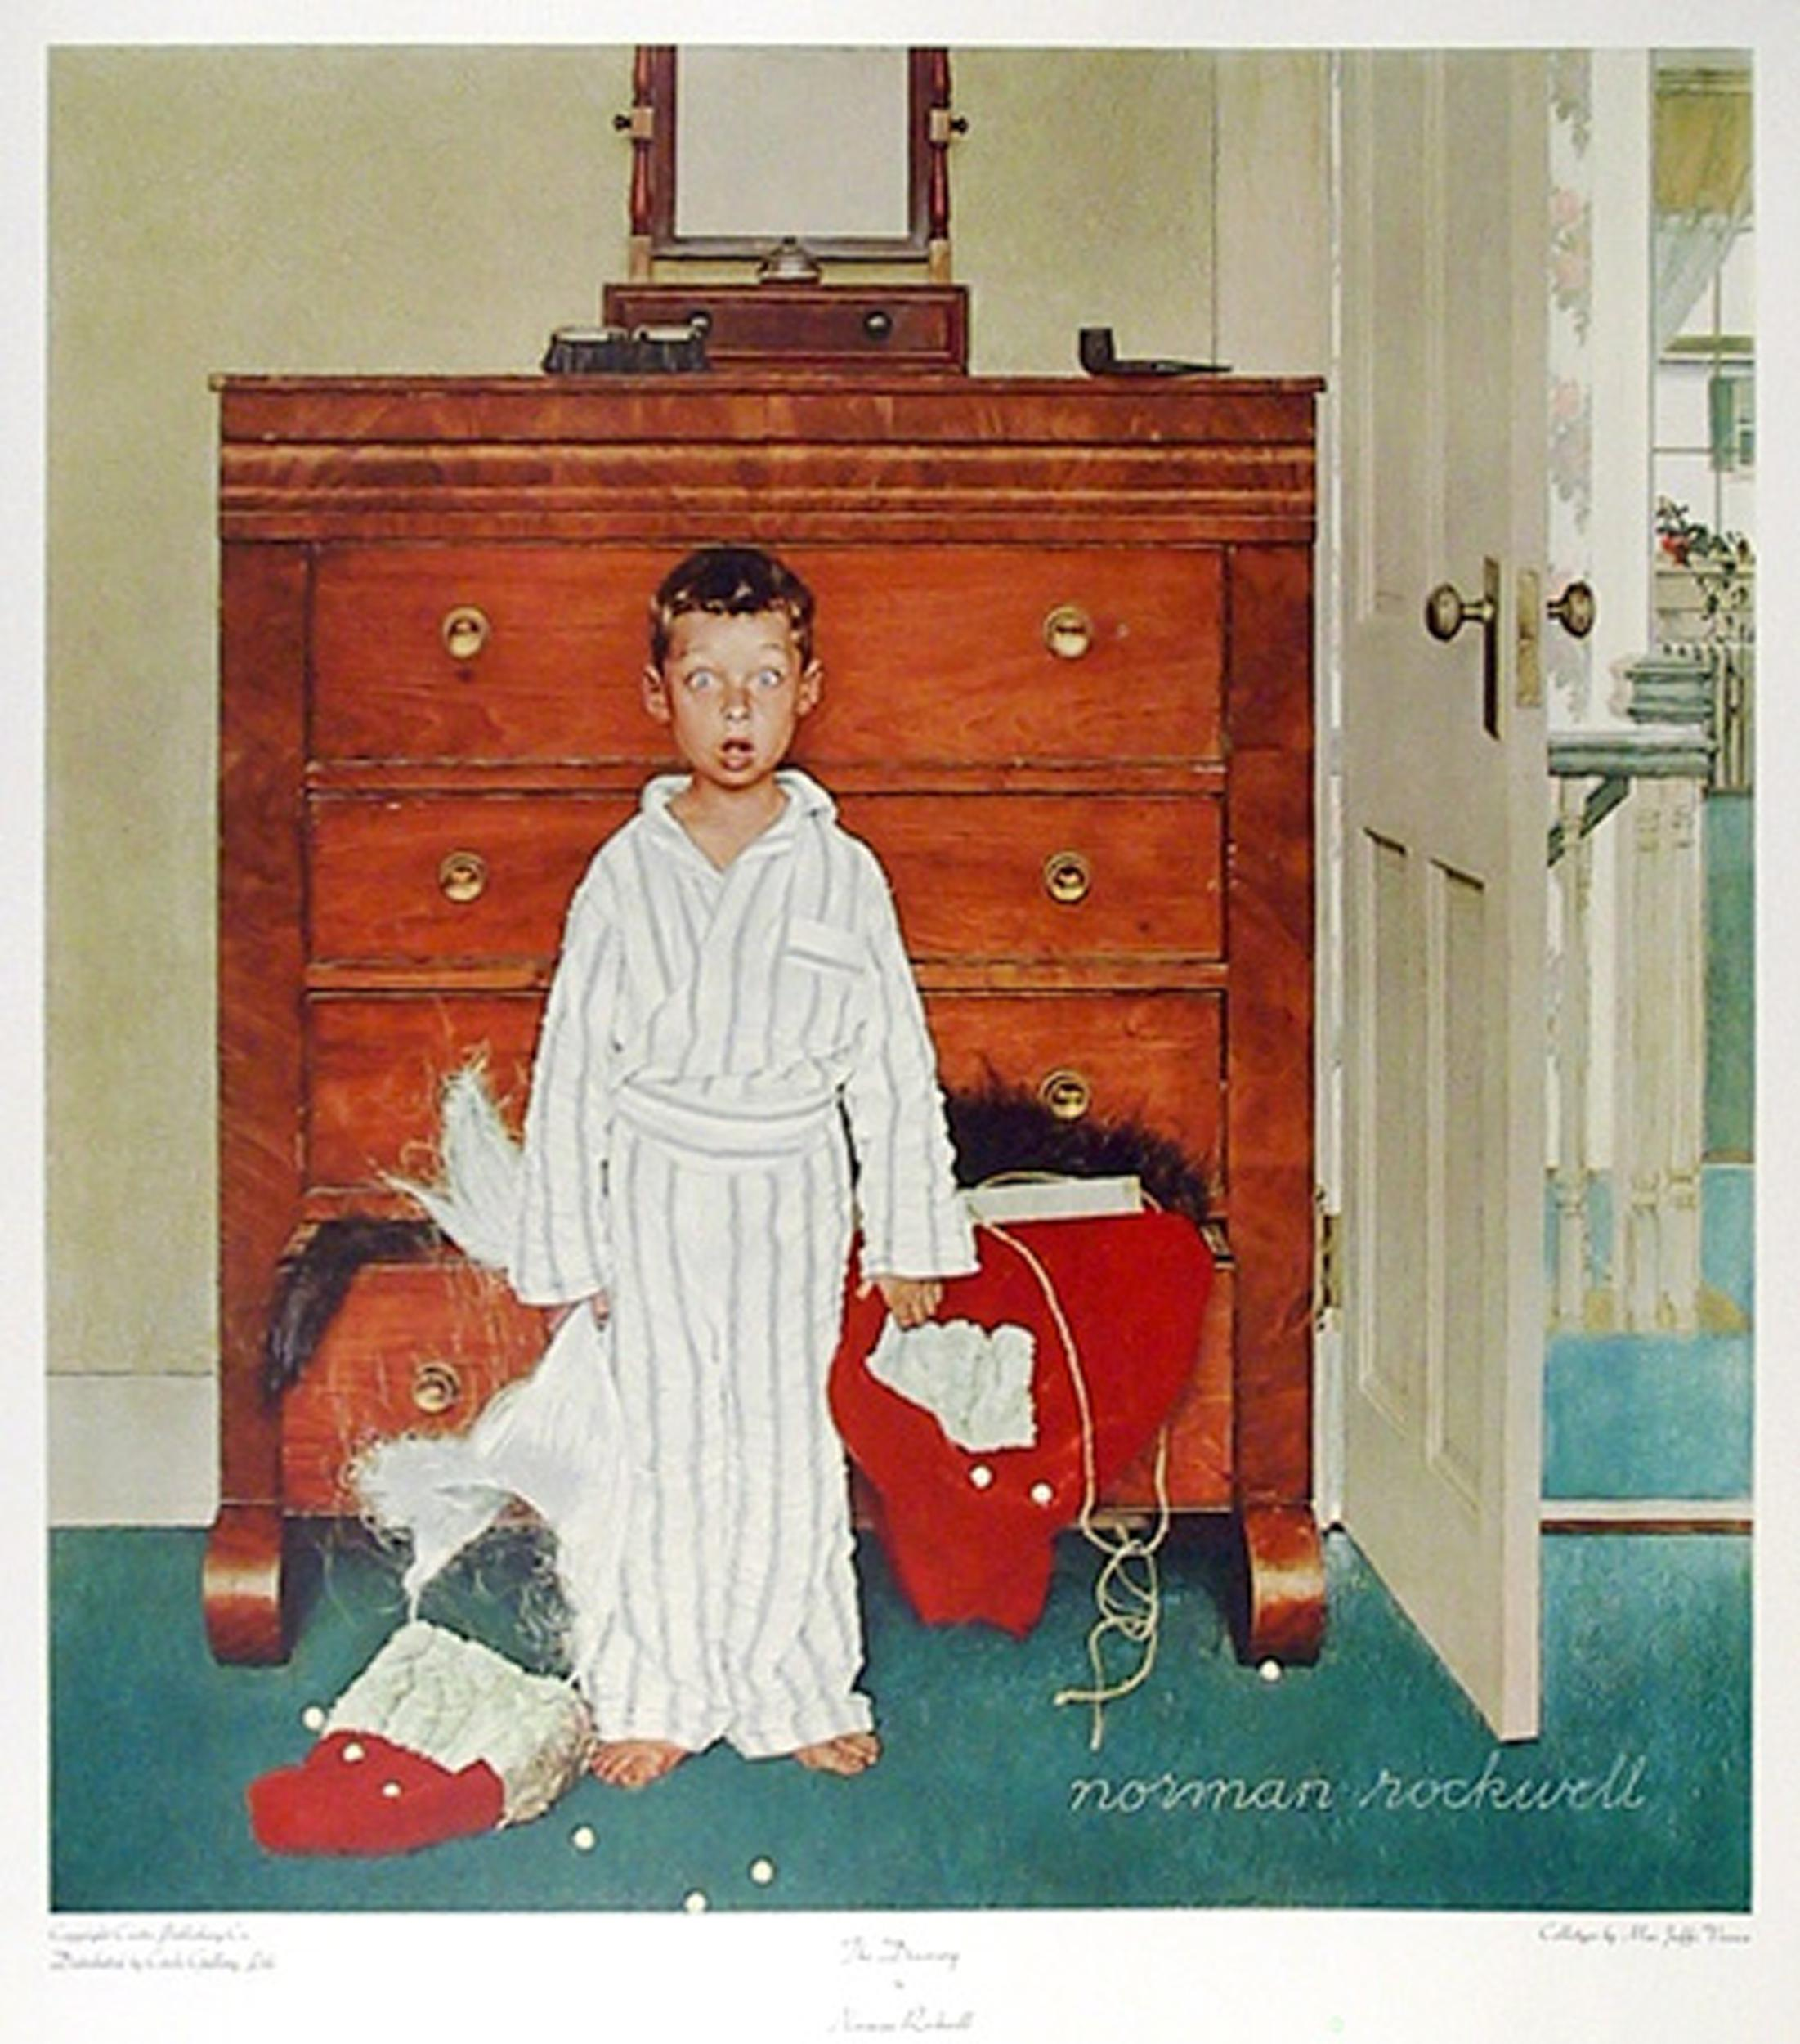 Norman Rockwell, The Discovery, Poster